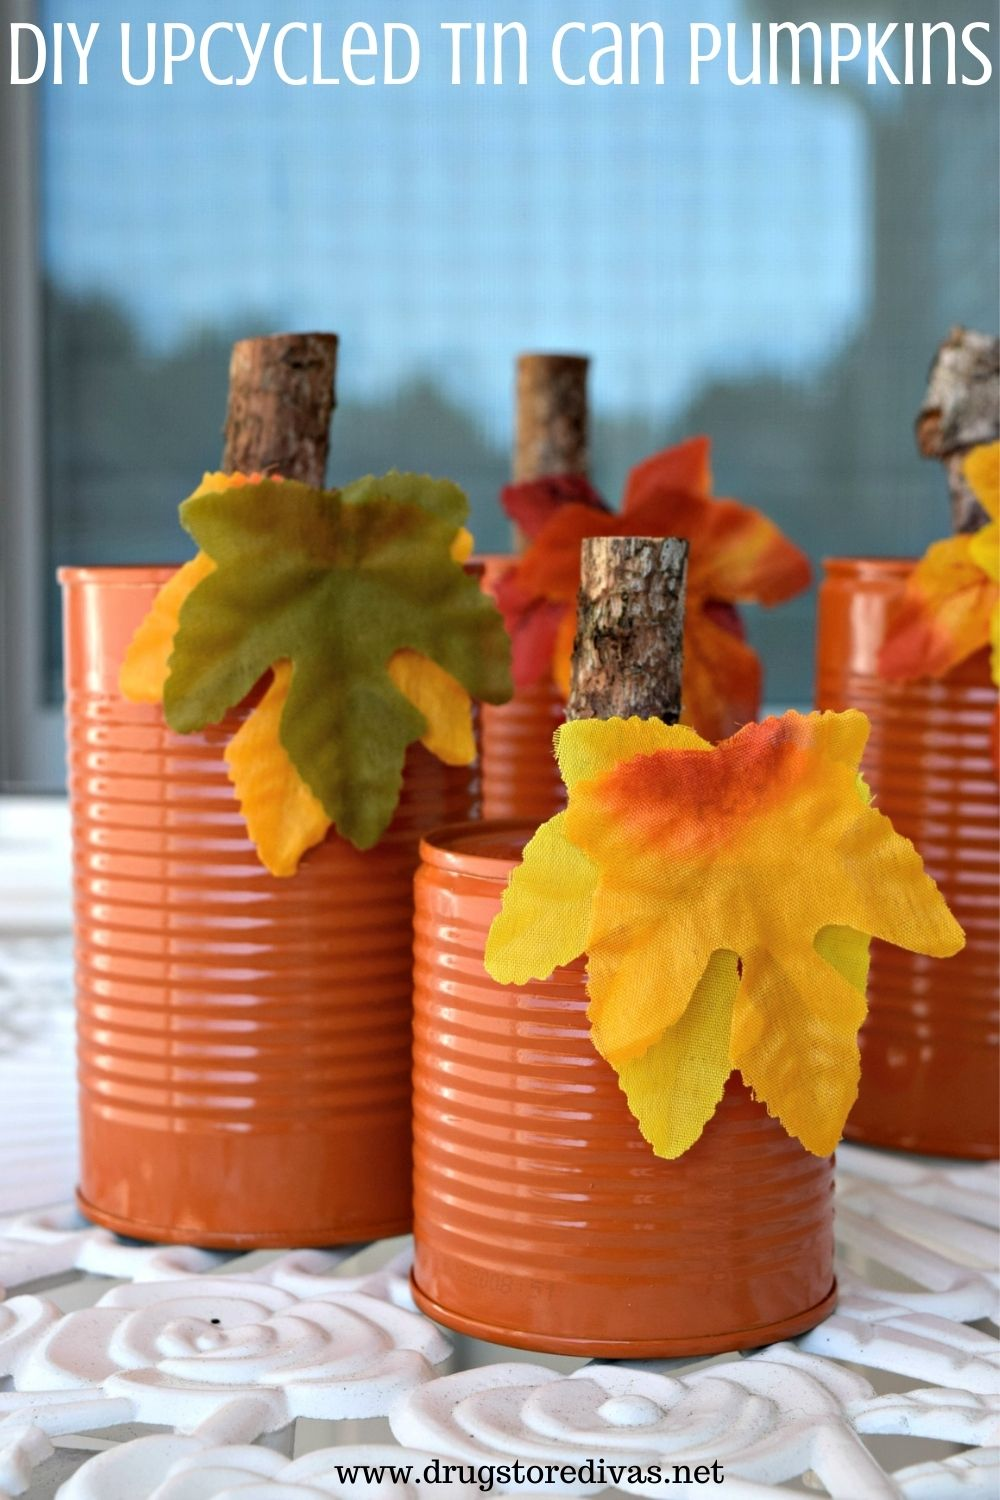 These DIY Upcycled Tin Can Pumpkins are super easy to make. And there's a good chance you have everything to make these rustic pumpkins at home already.